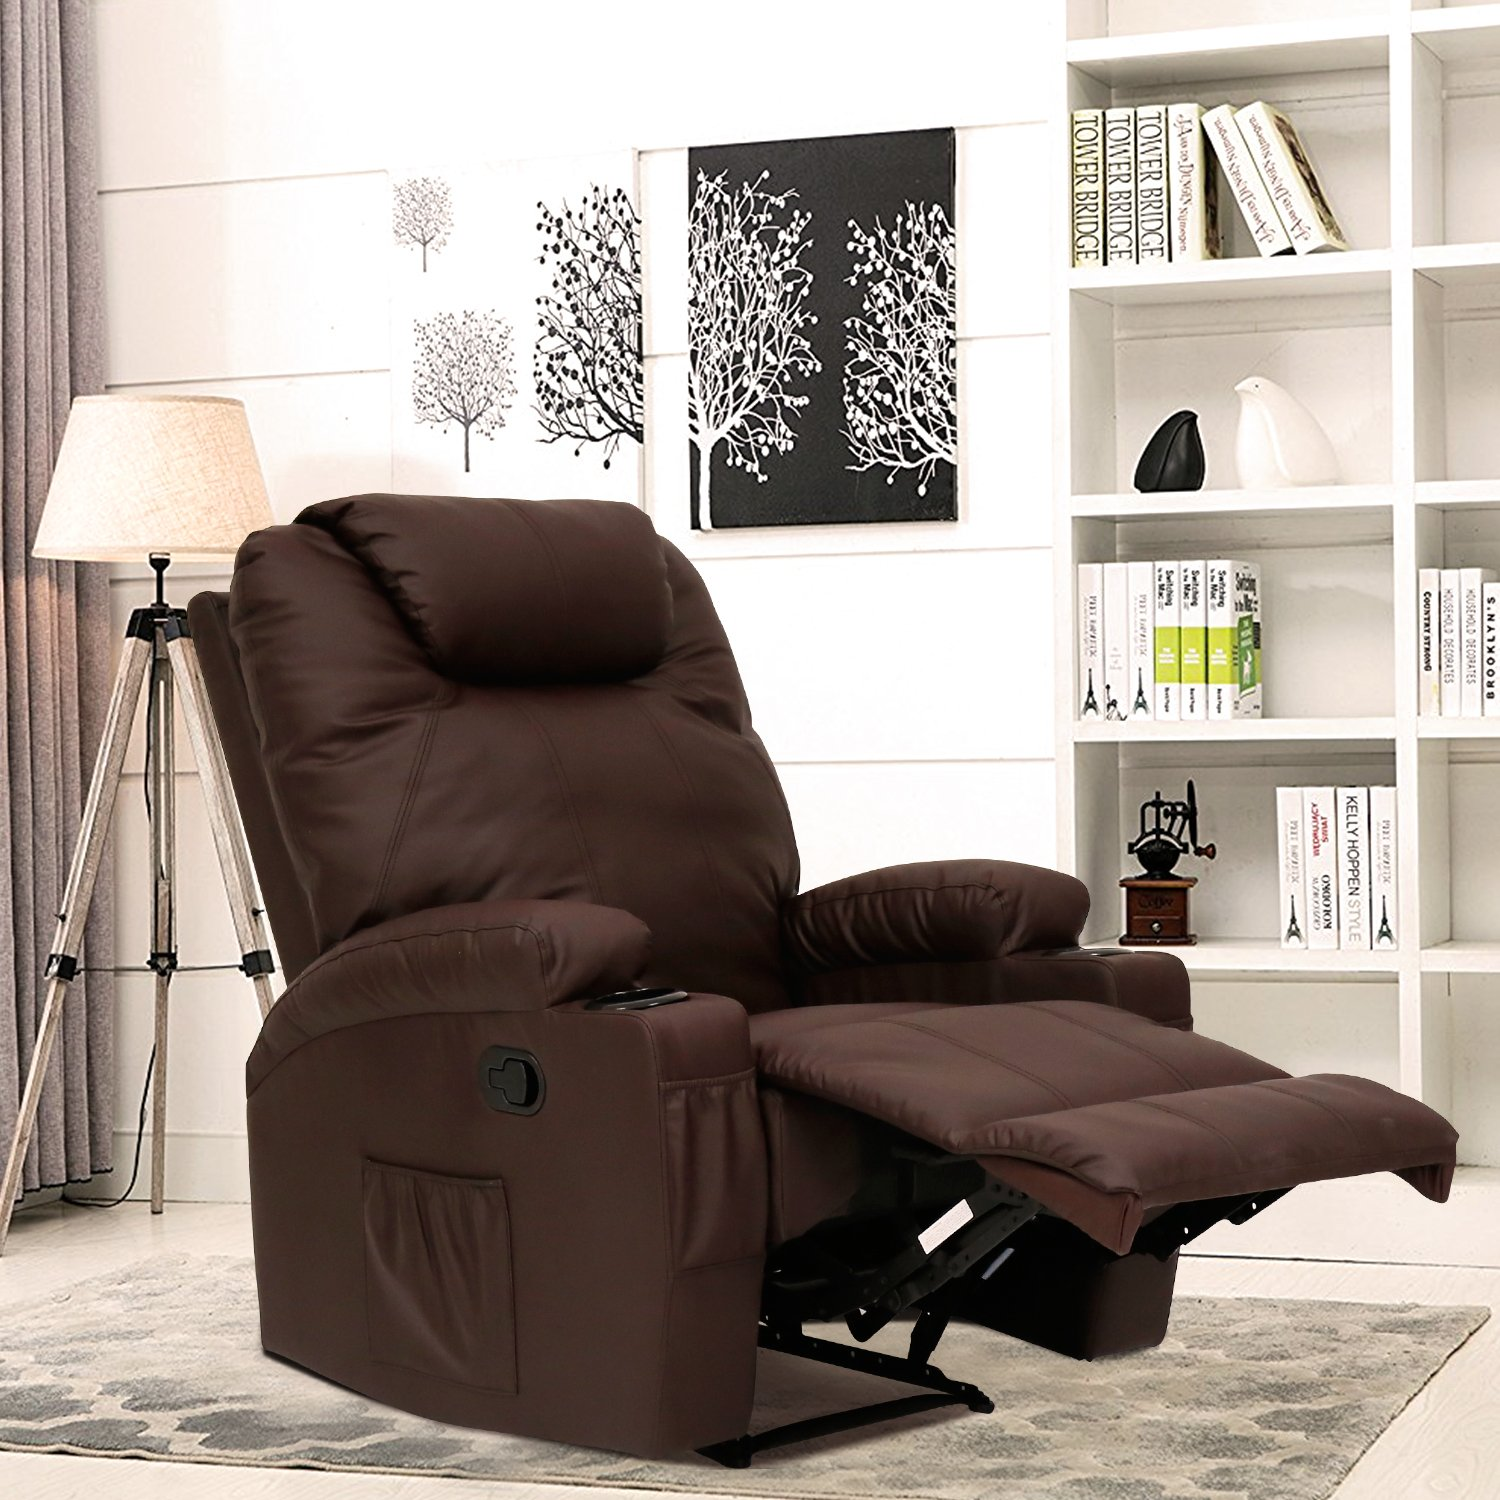 Kinbor Massage Recliner Leather Sofa Chair Ergonomic Lounge Swivel Heated with Control and Cup Holder (brown)